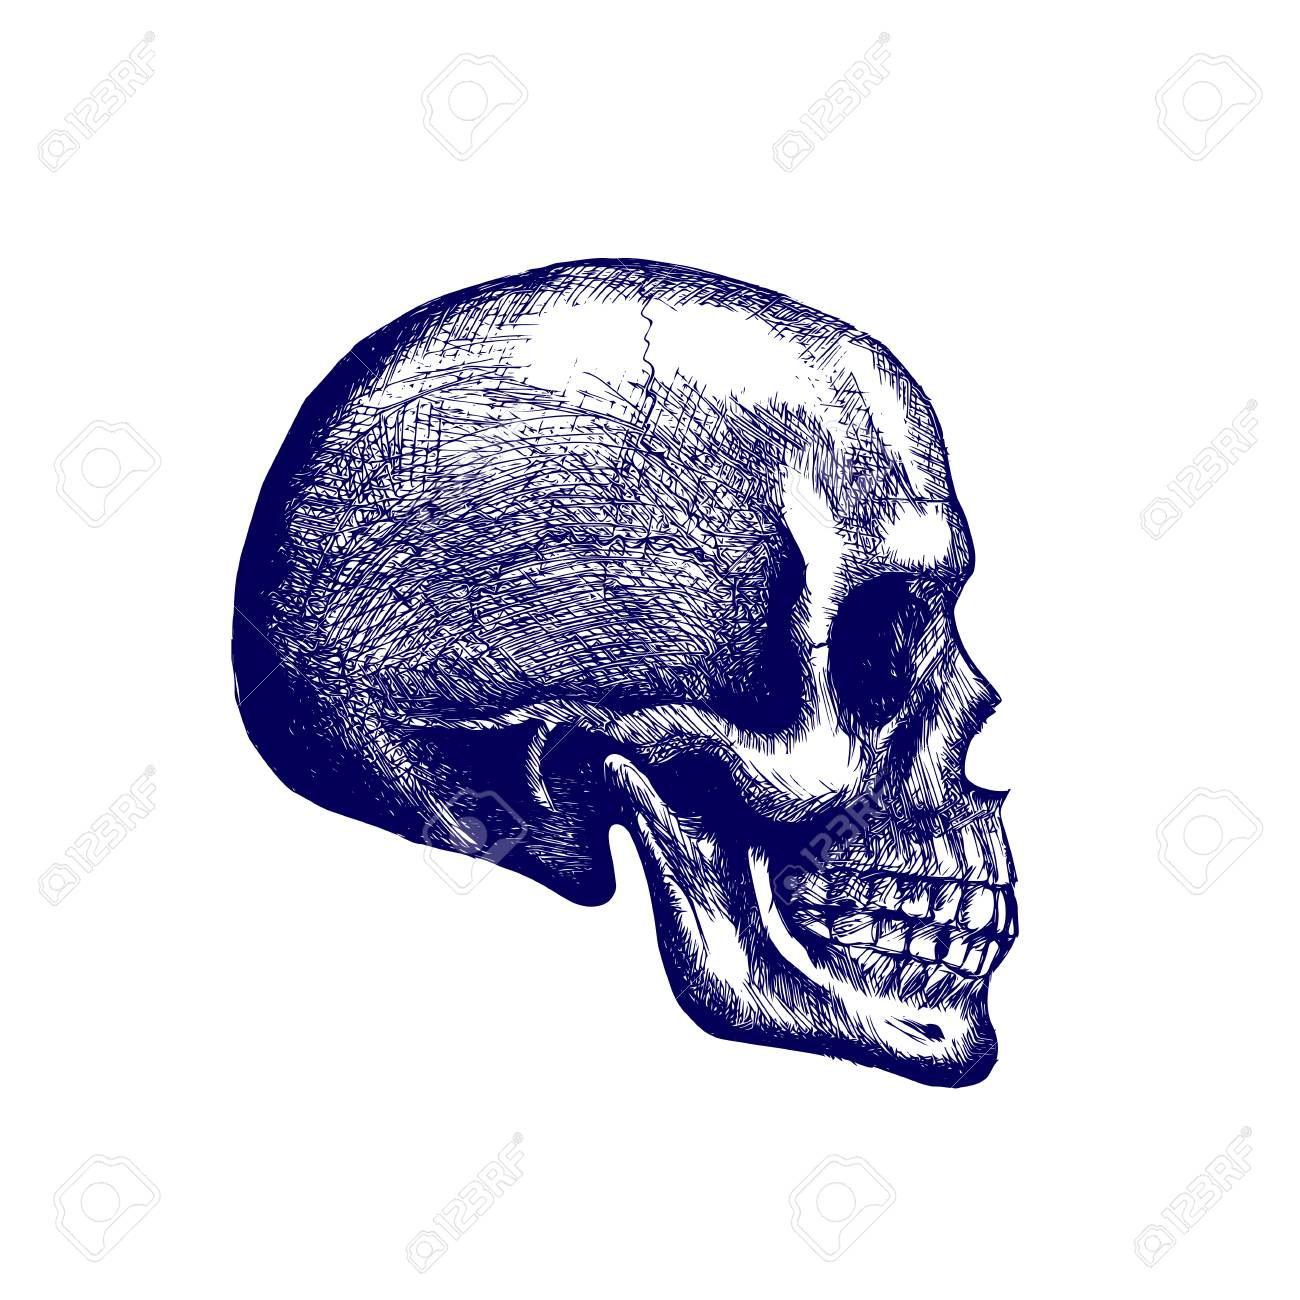 Skull Of A Human In Profile Hand Drawing Anatomy Skull With